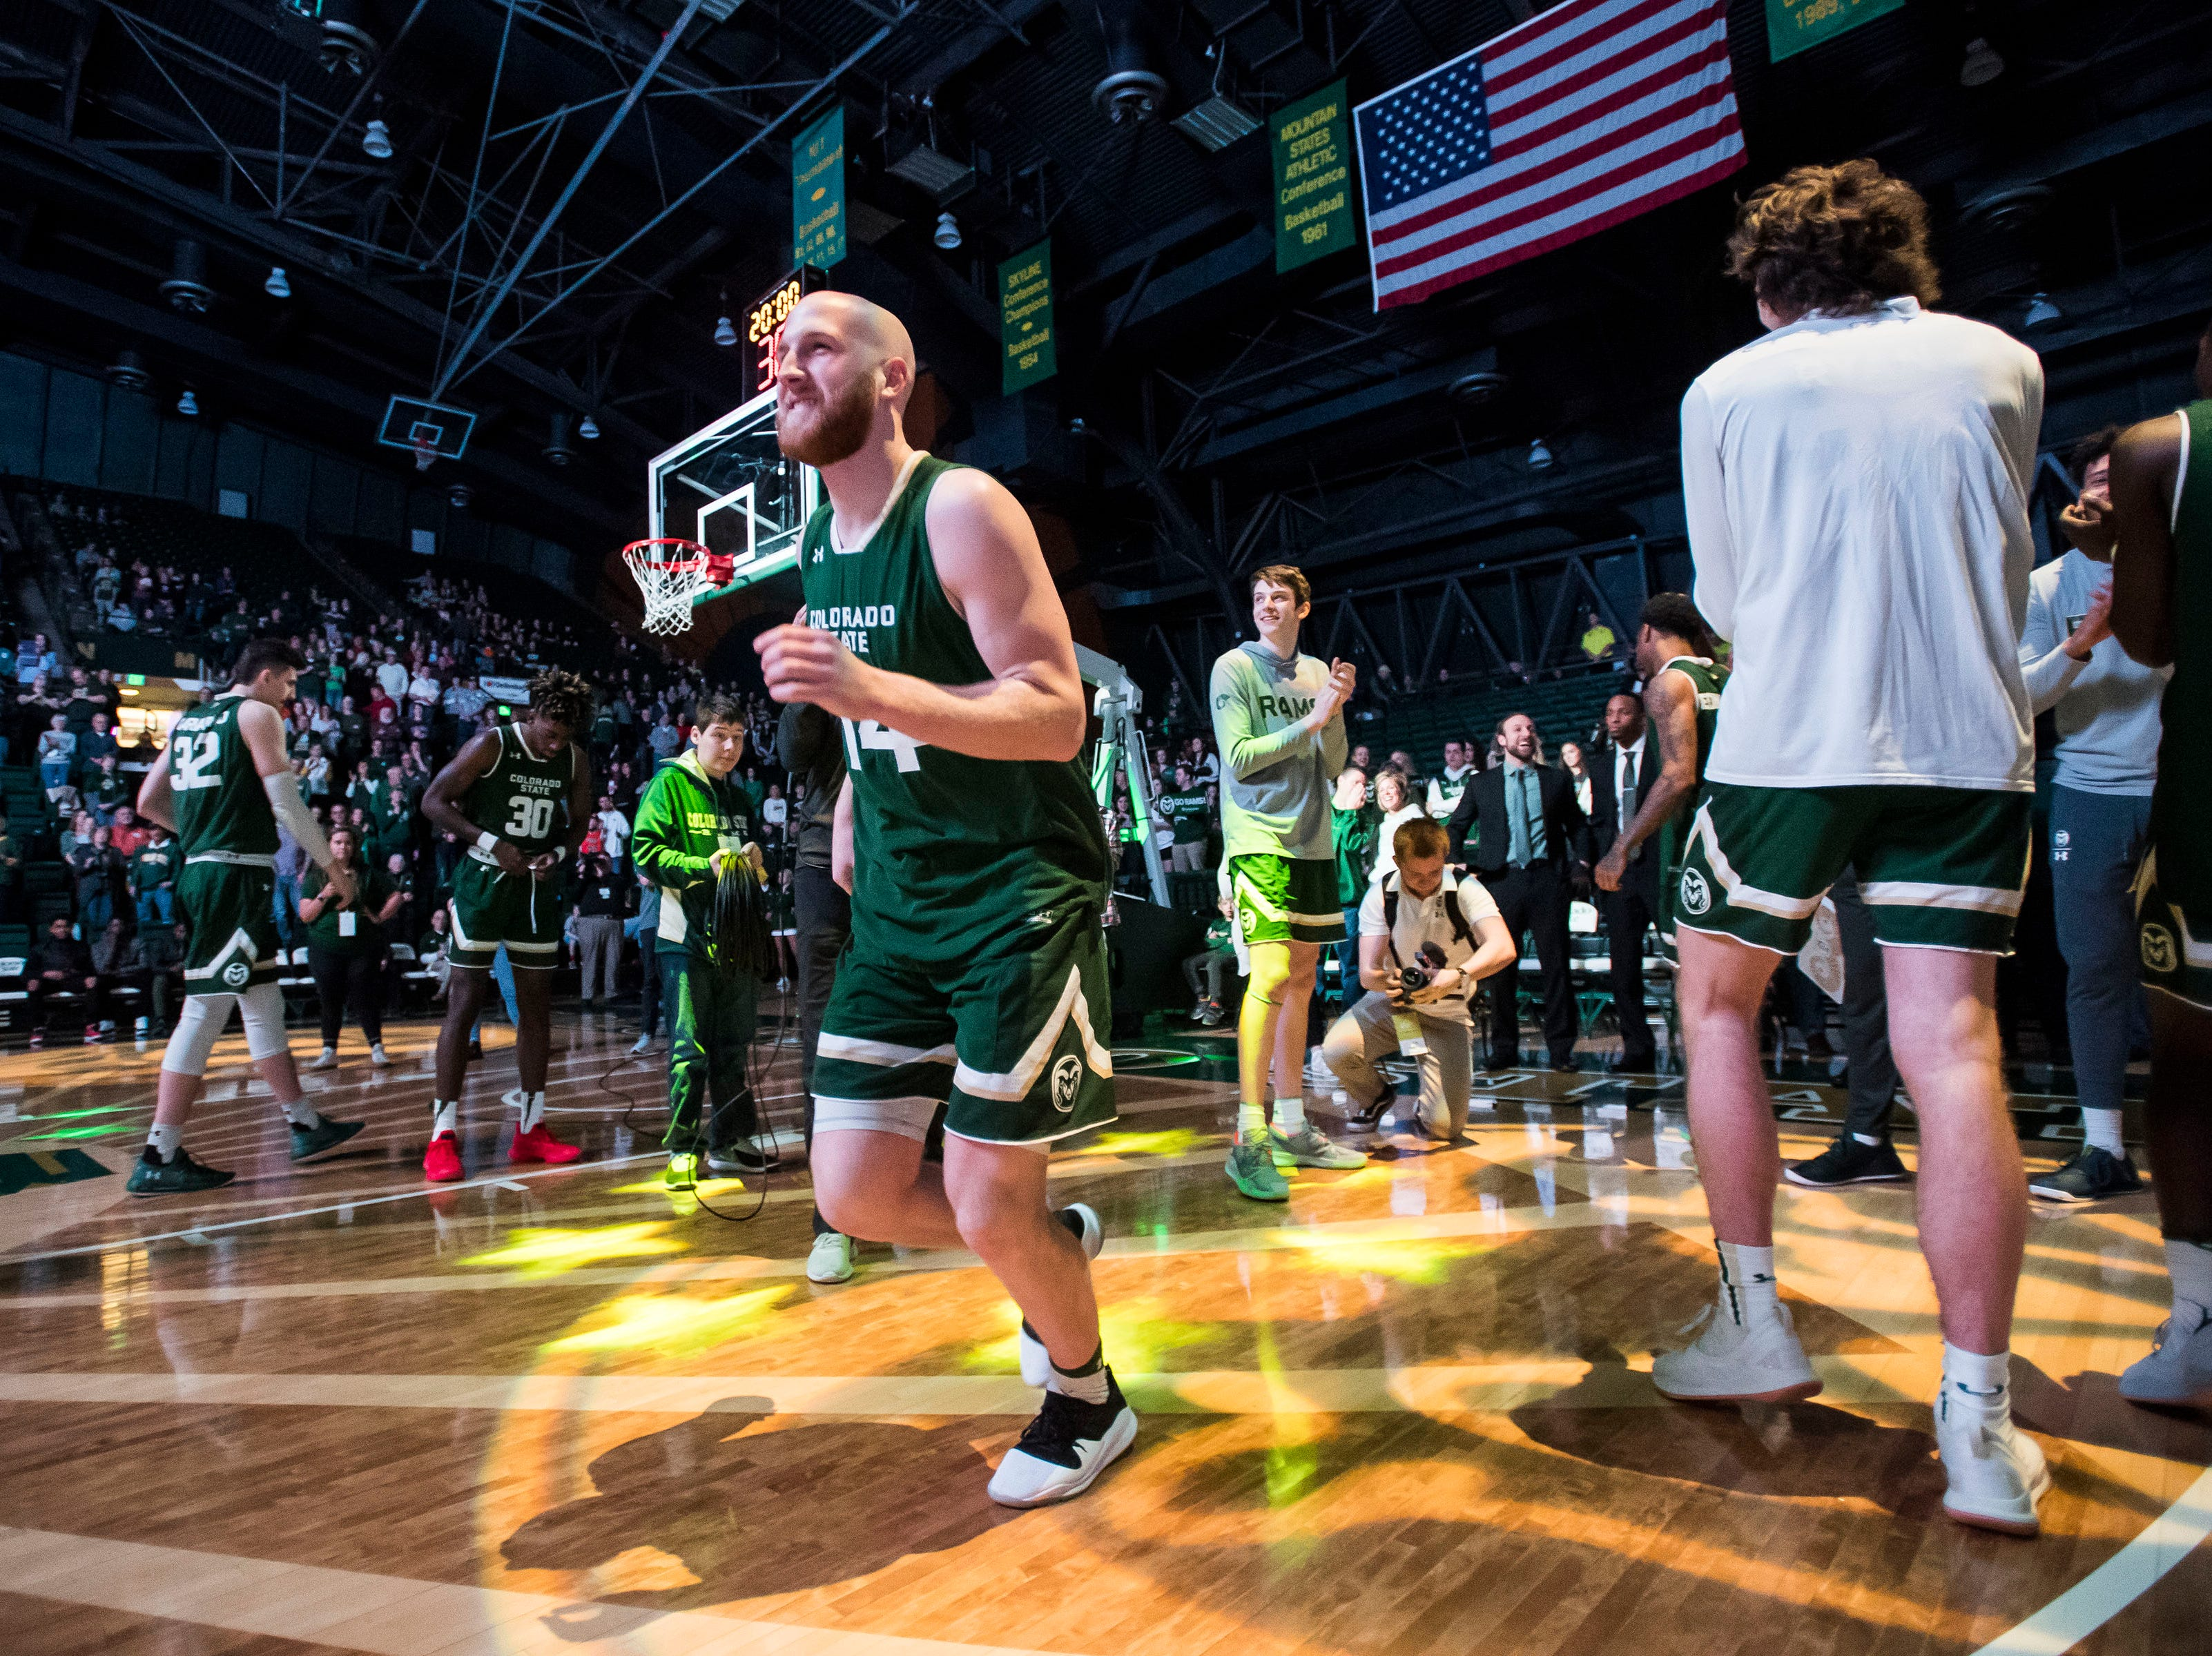 Colorado State University senior guar Robbie Berwick (14) is introduced before a game against University of Nevada, Las Vegas on Saturday, March 9, 2019, at Moby Arena in Fort Collins, Colo.